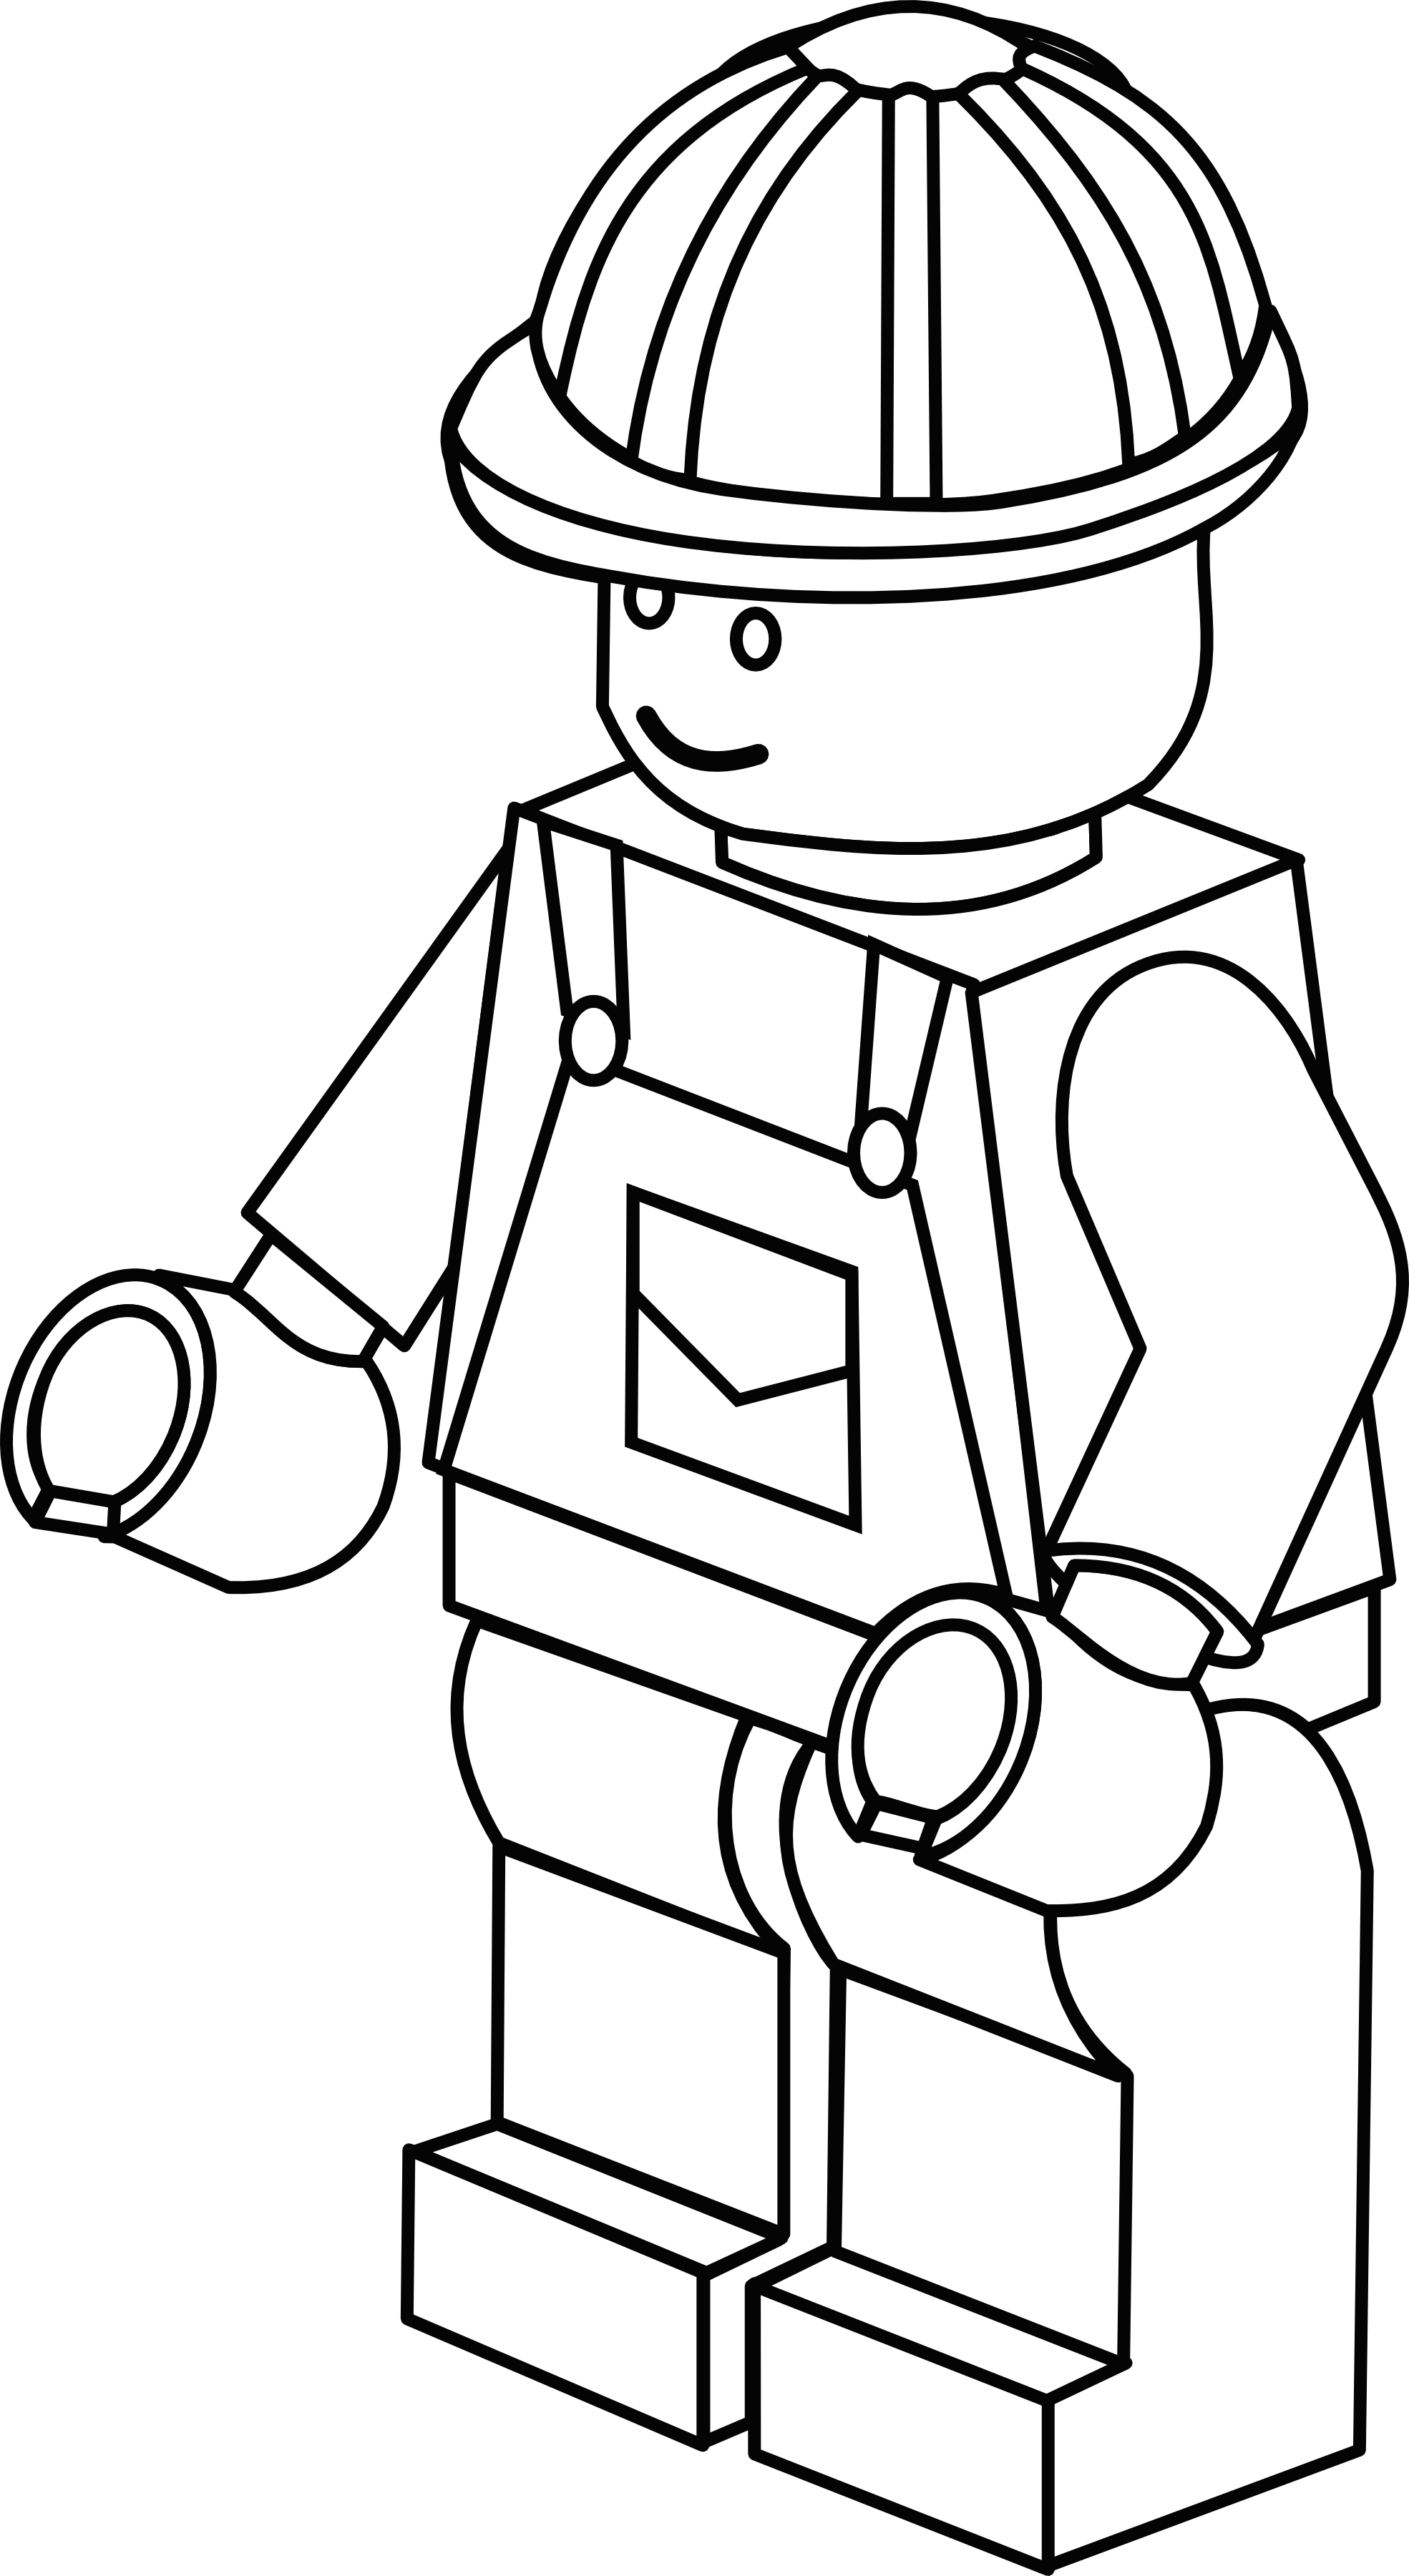 lego printable colouring pages free printable lego coloring pages for kids cool2bkids pages printable colouring lego